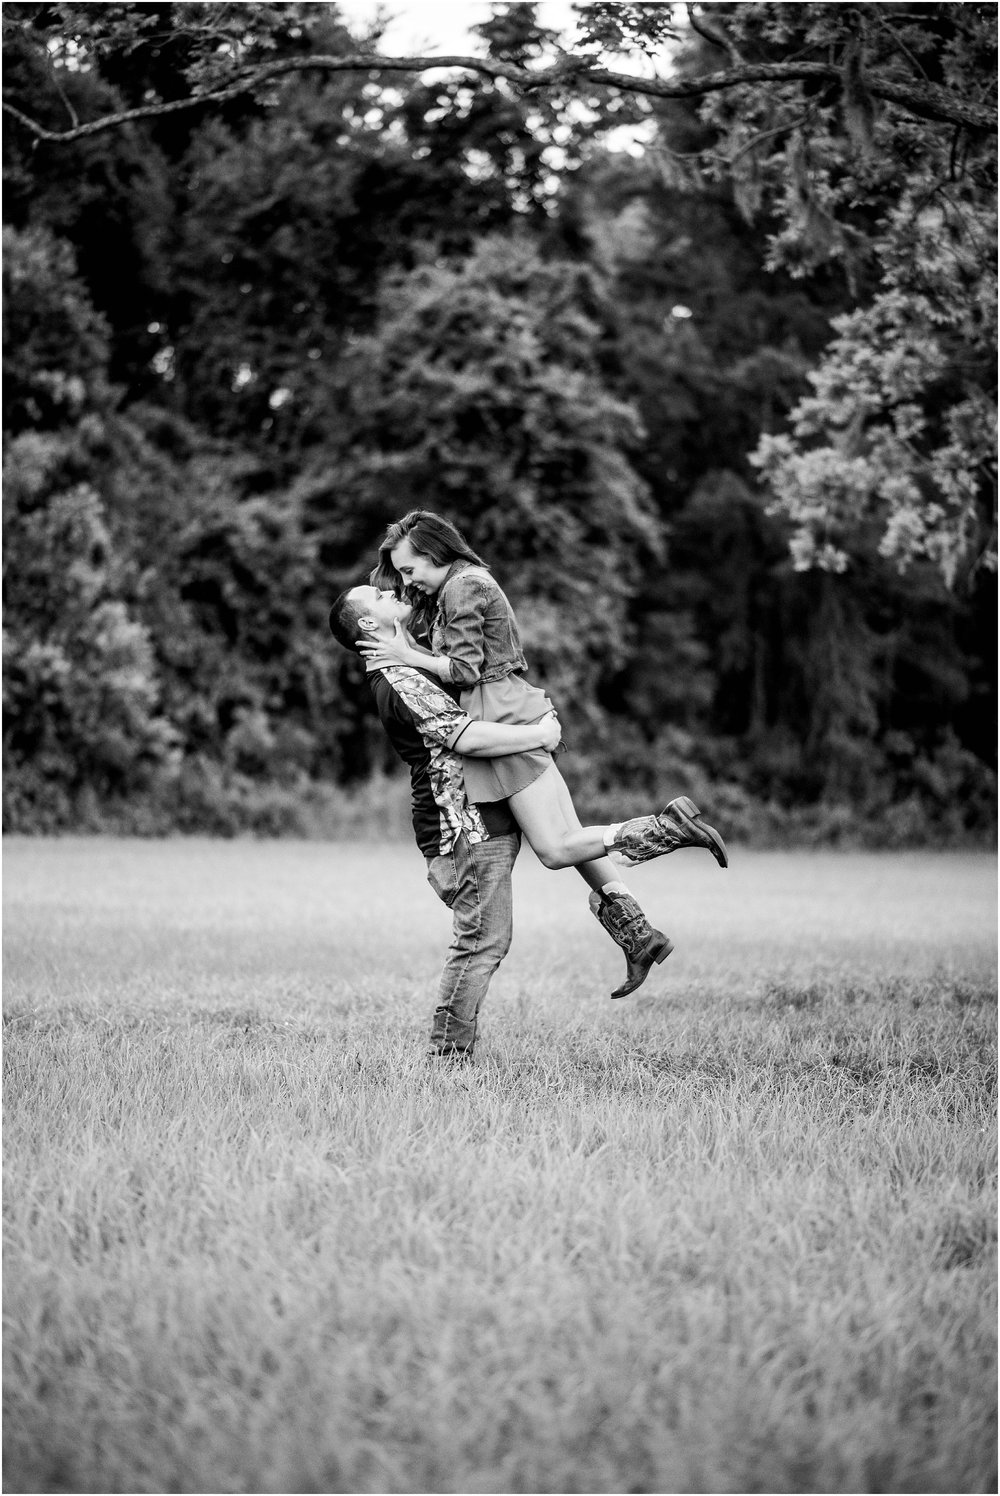 Haley & Kyle Engagement Photoshoot in J.R Alford Greenway, Tallahassee FL_0006.jpg